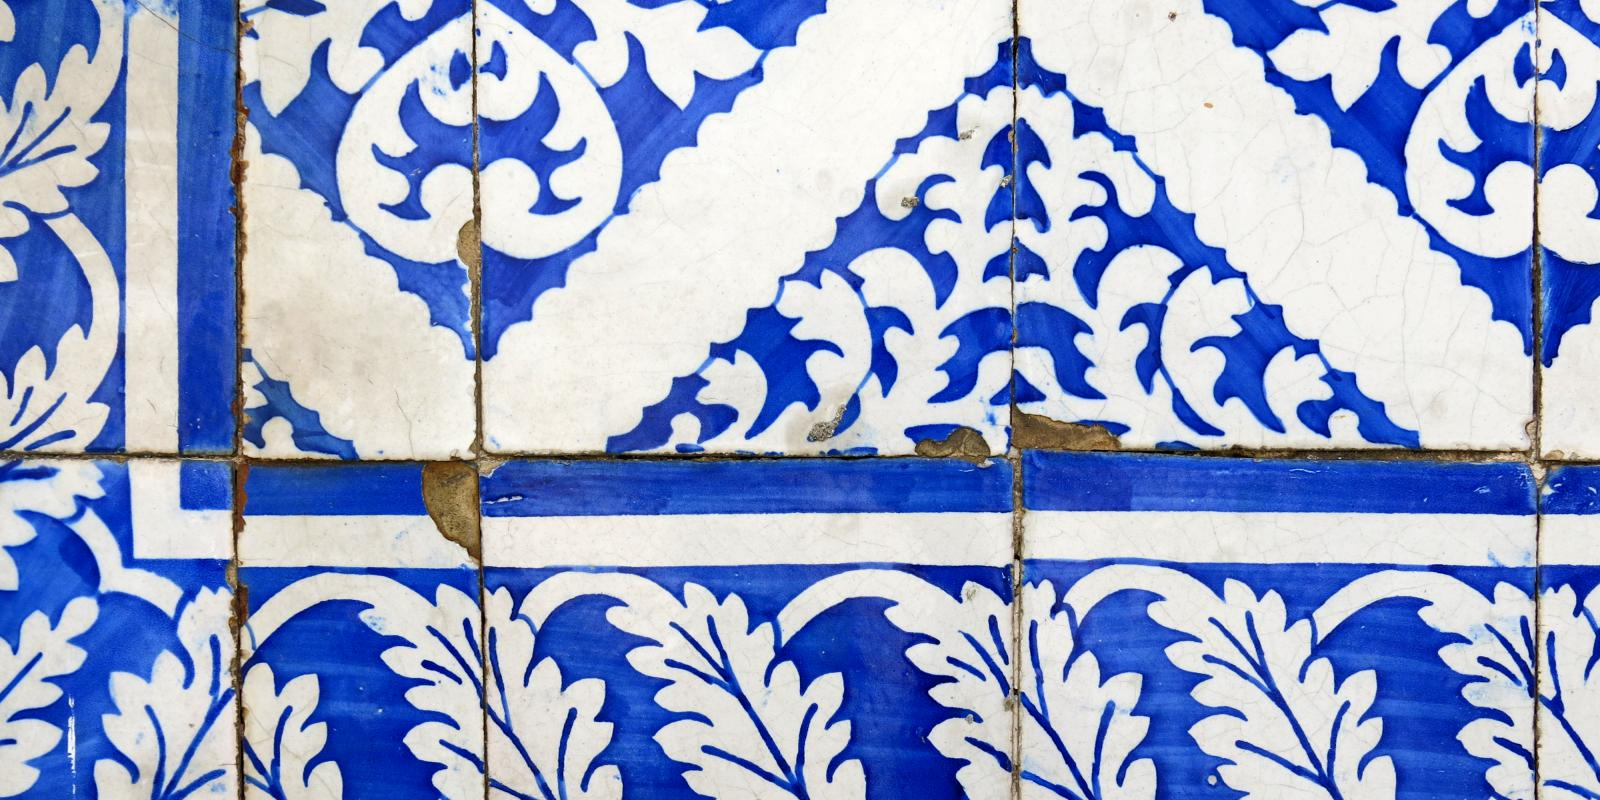 Wall Tiles in Lisbon Portugal, (2013)